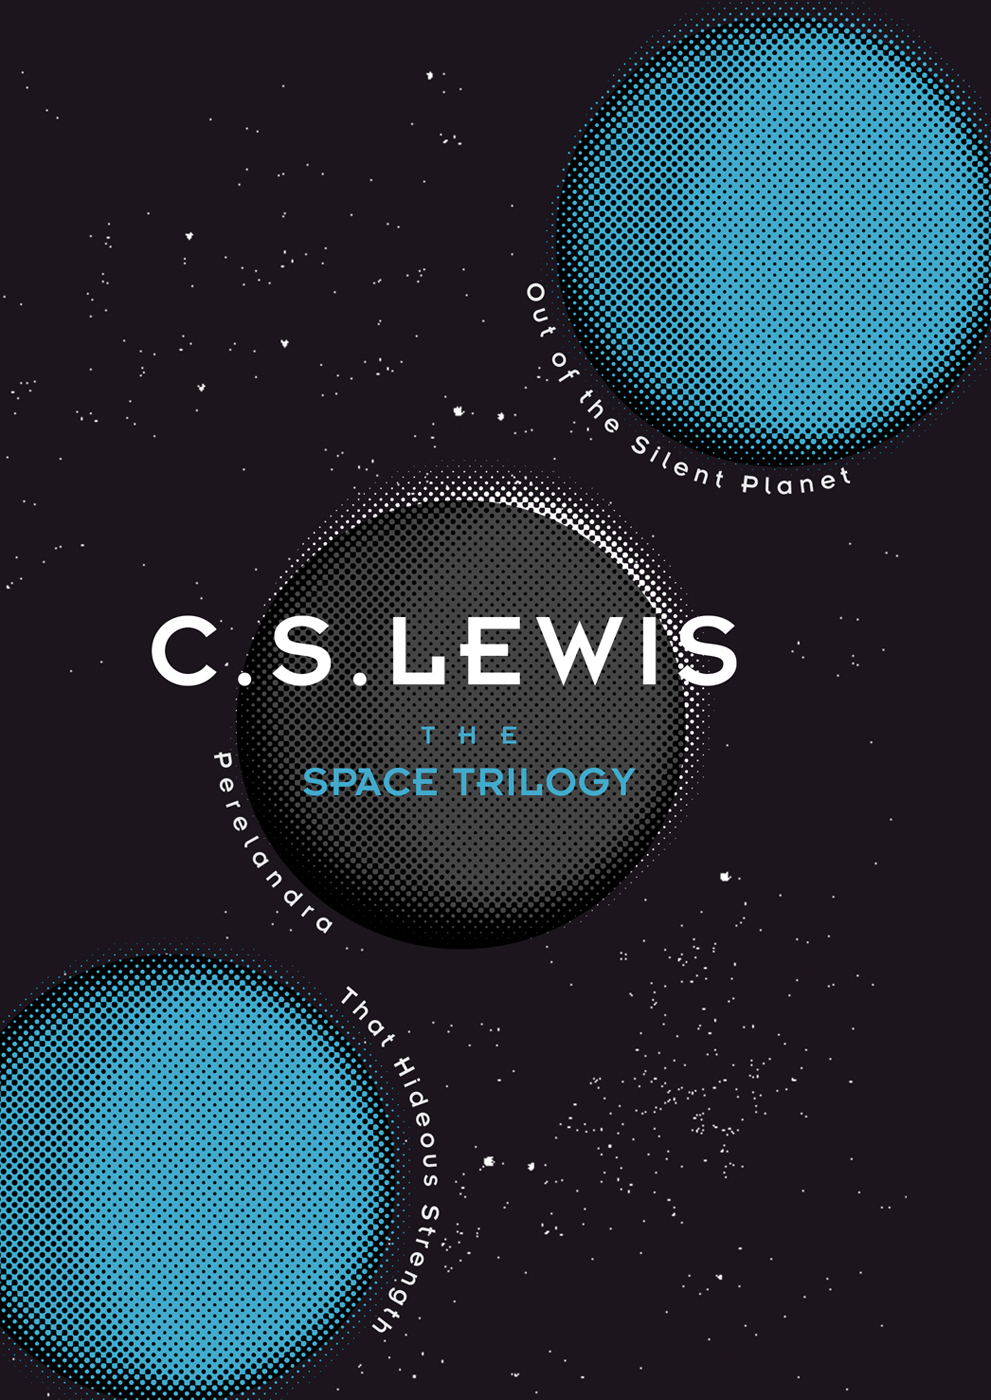 C S Lewis The Space Trilogy